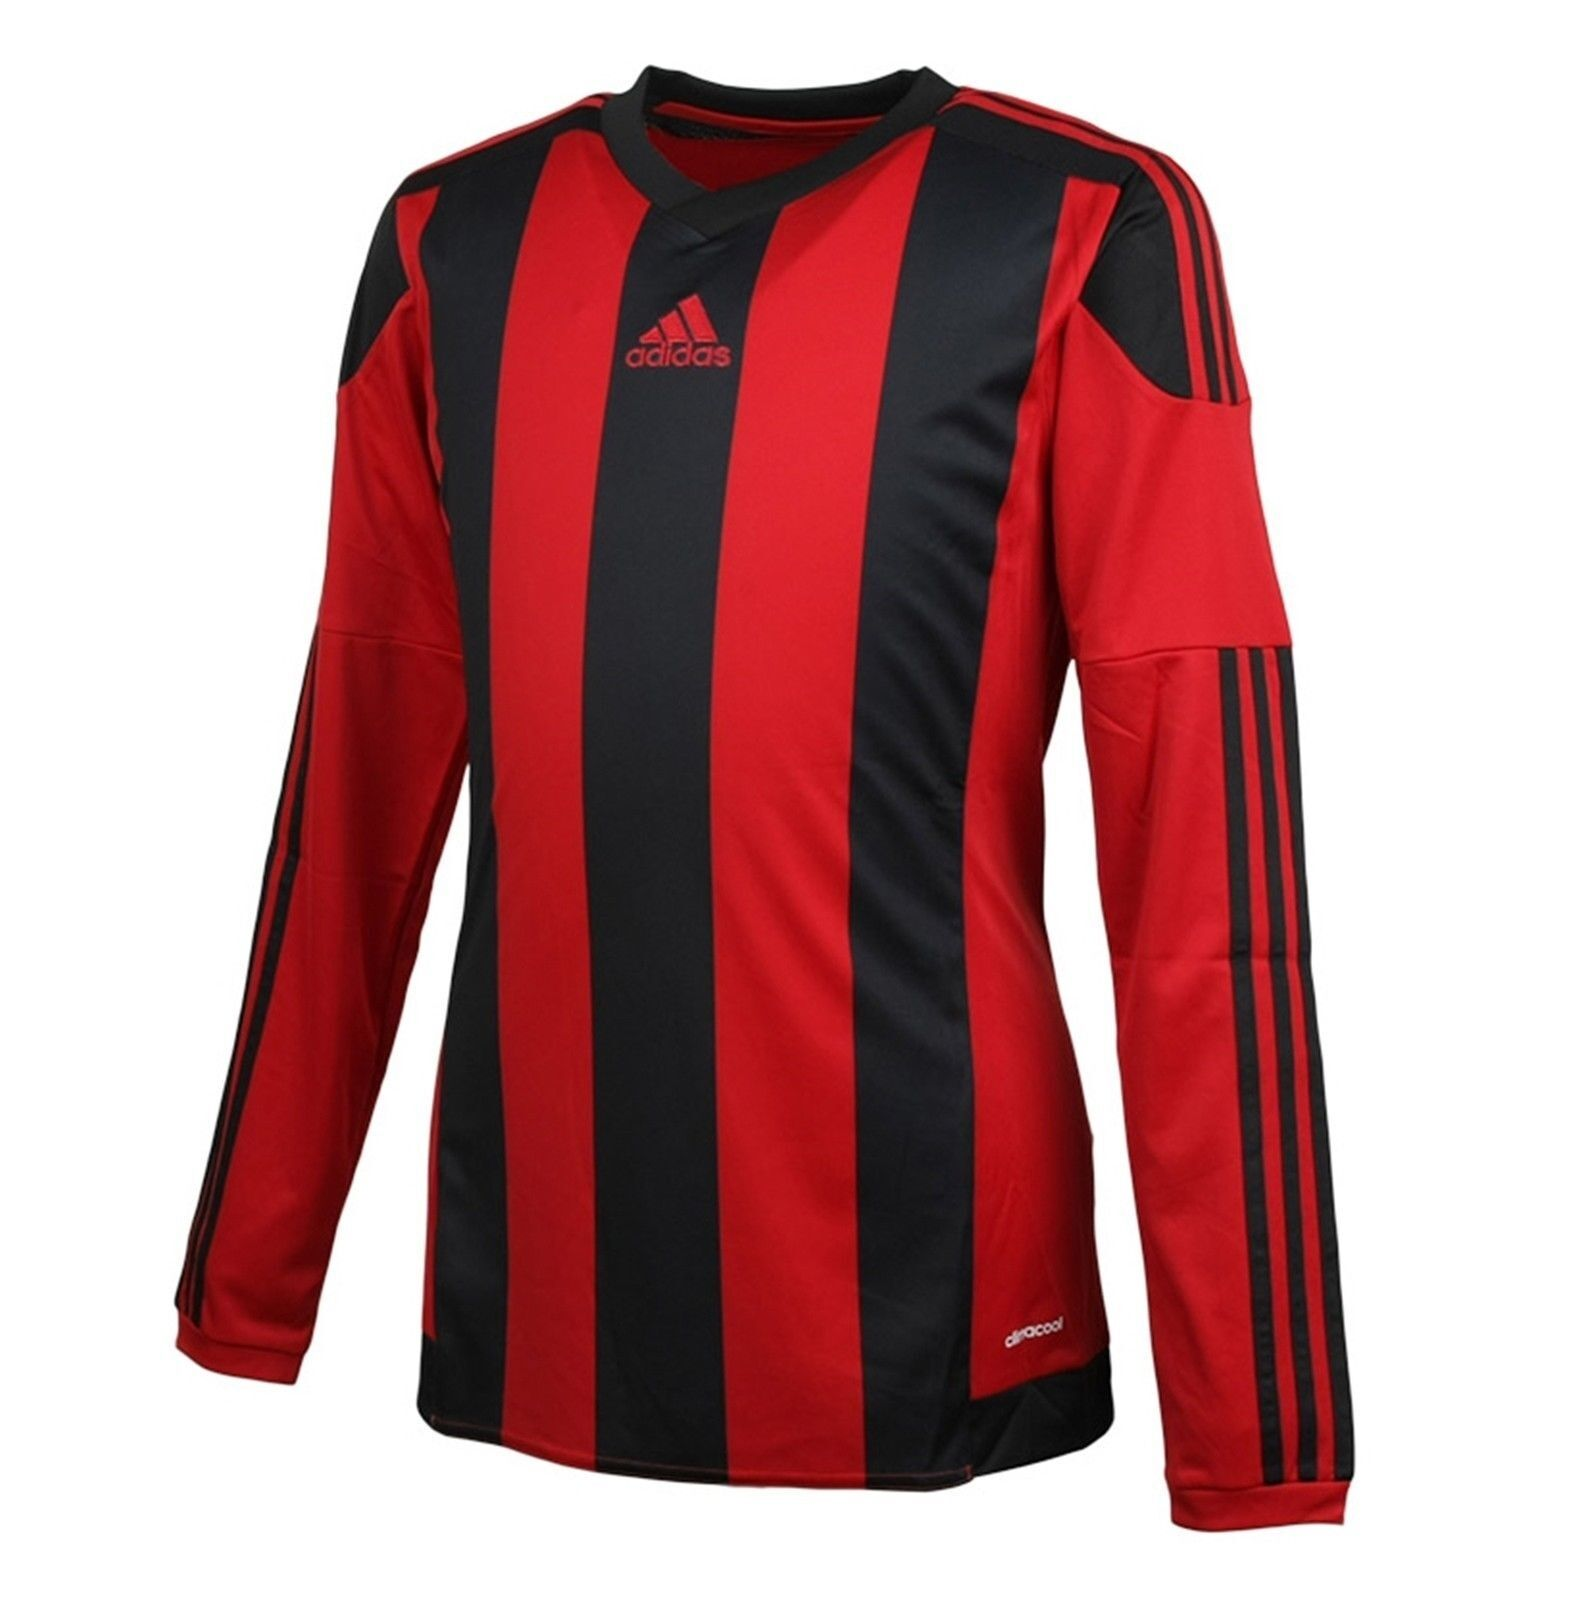 Adidas Men Stripe 15 Climacool Soccer Football Fitness Top Red L S Jersey AA3725